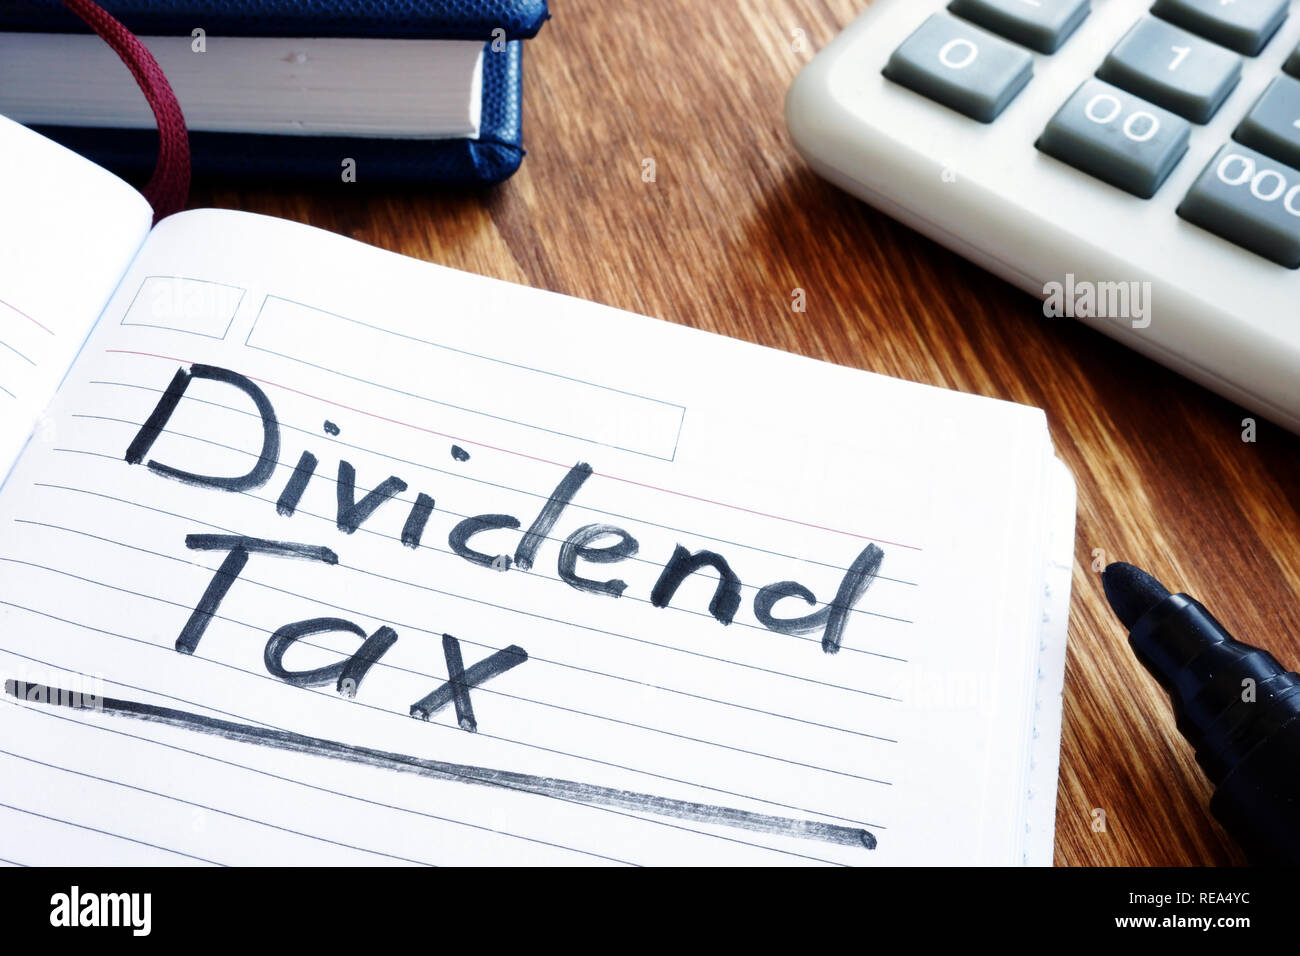 Dividend tax concept. Note pad and calculator. - Stock Image